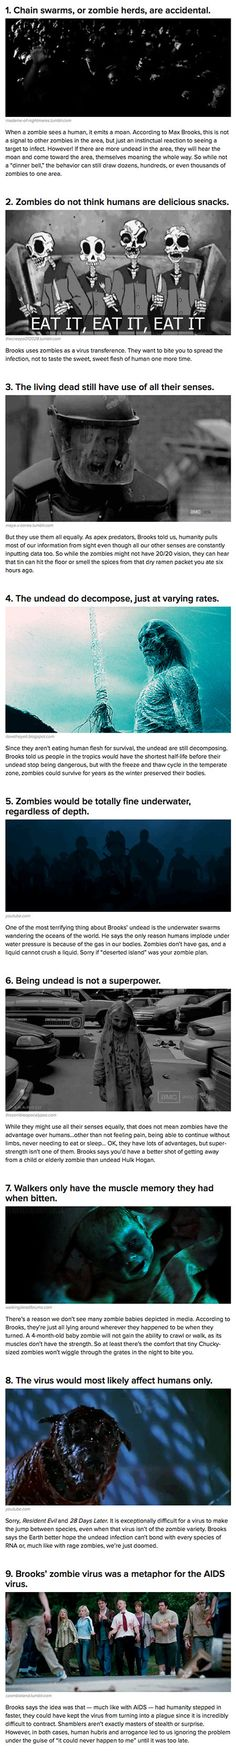 As long as they aren't fast zombies, humanity should be OK. Max Brooks, author of World War Z, sat down at New York Comic-Con to discuss what makes the undead tick.